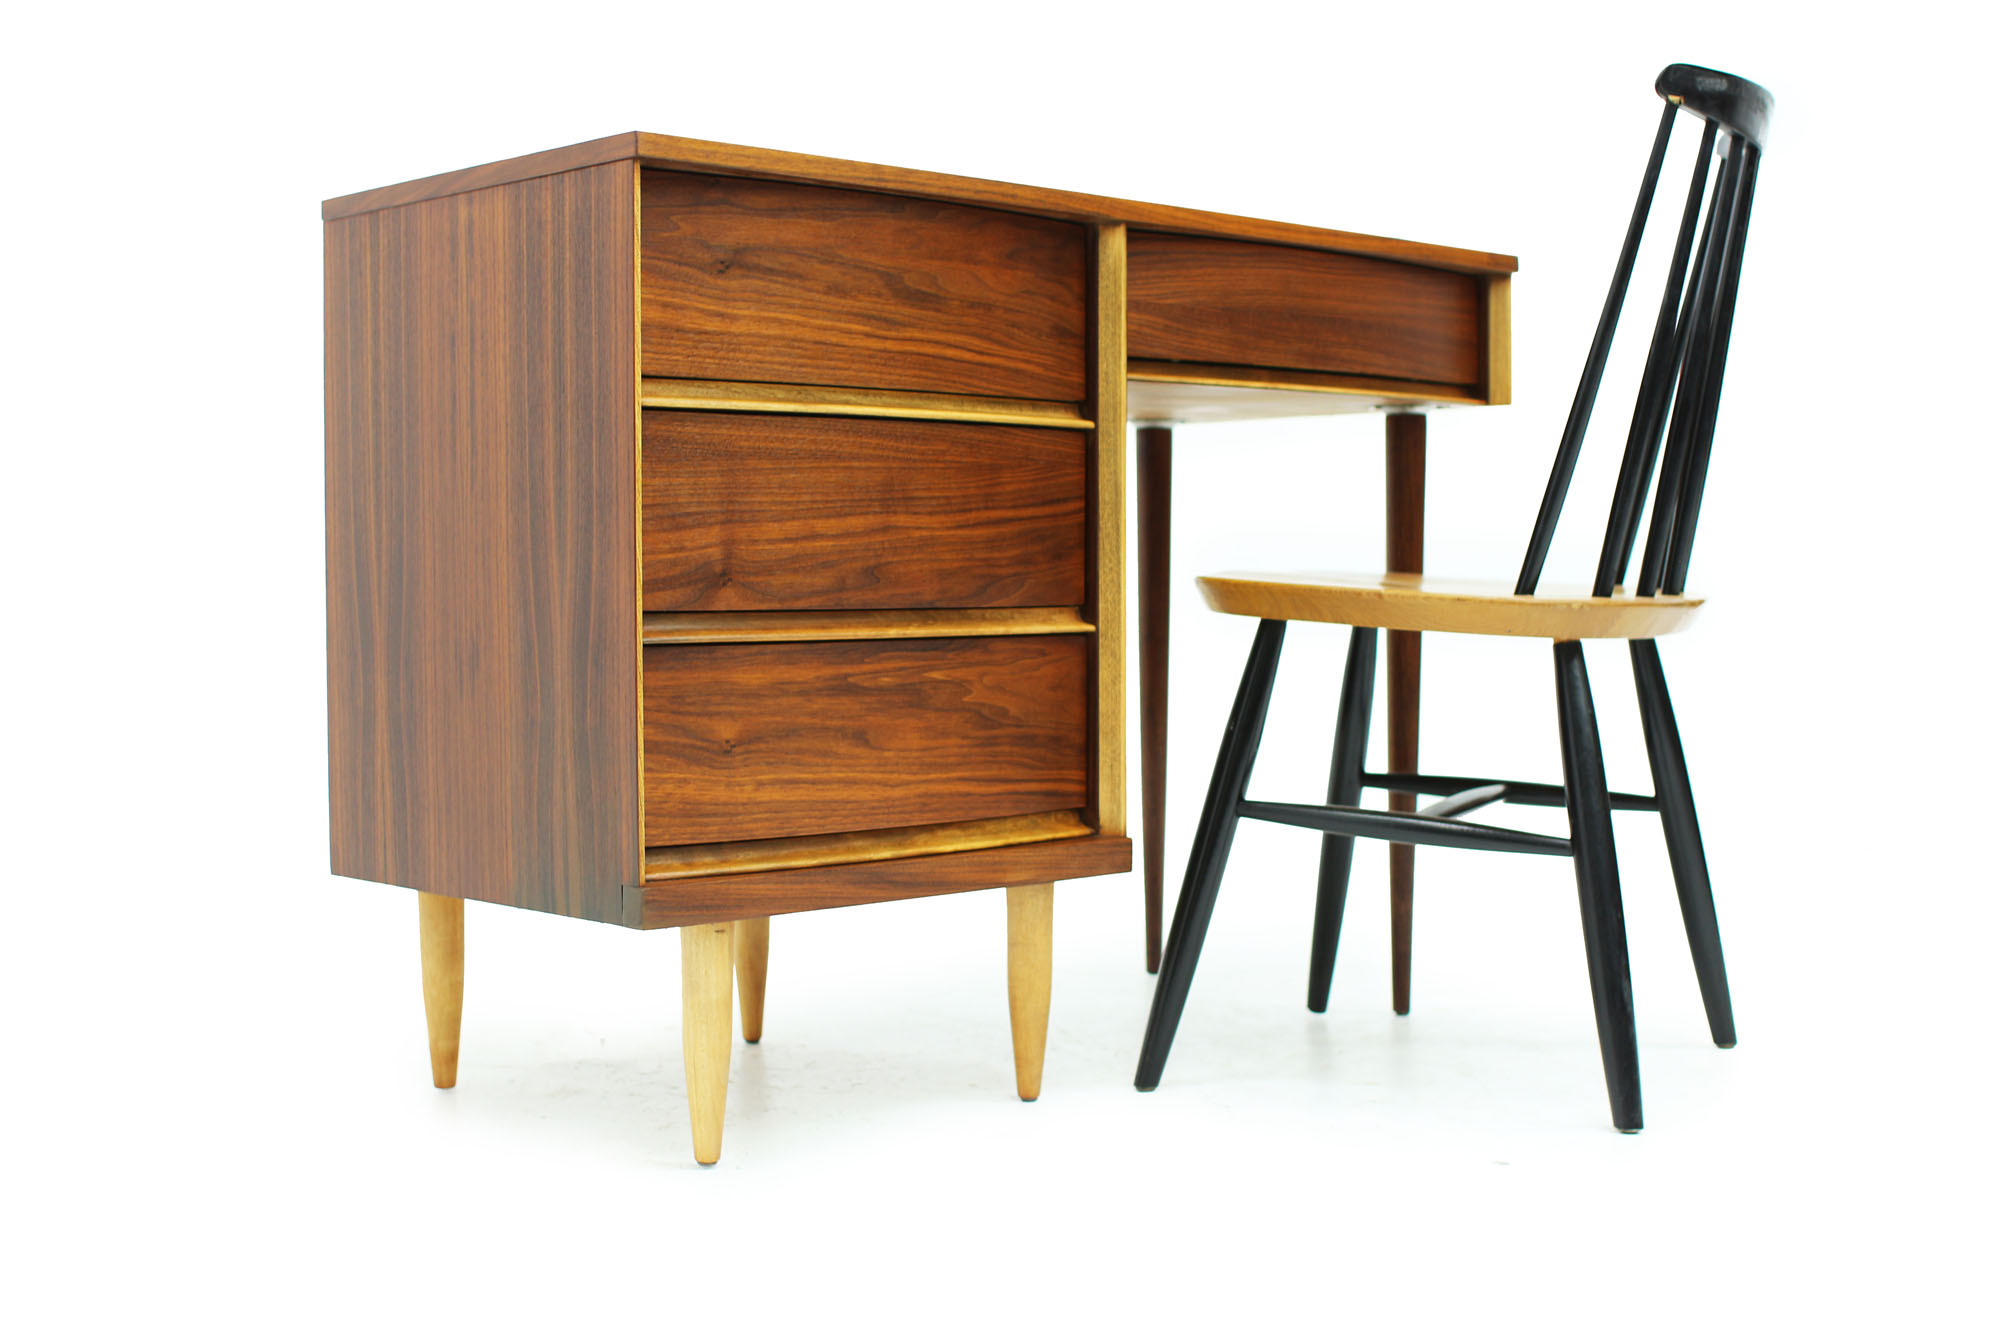 MCM Walnut Desk with Curved Drawers and long Legs (2).jpg